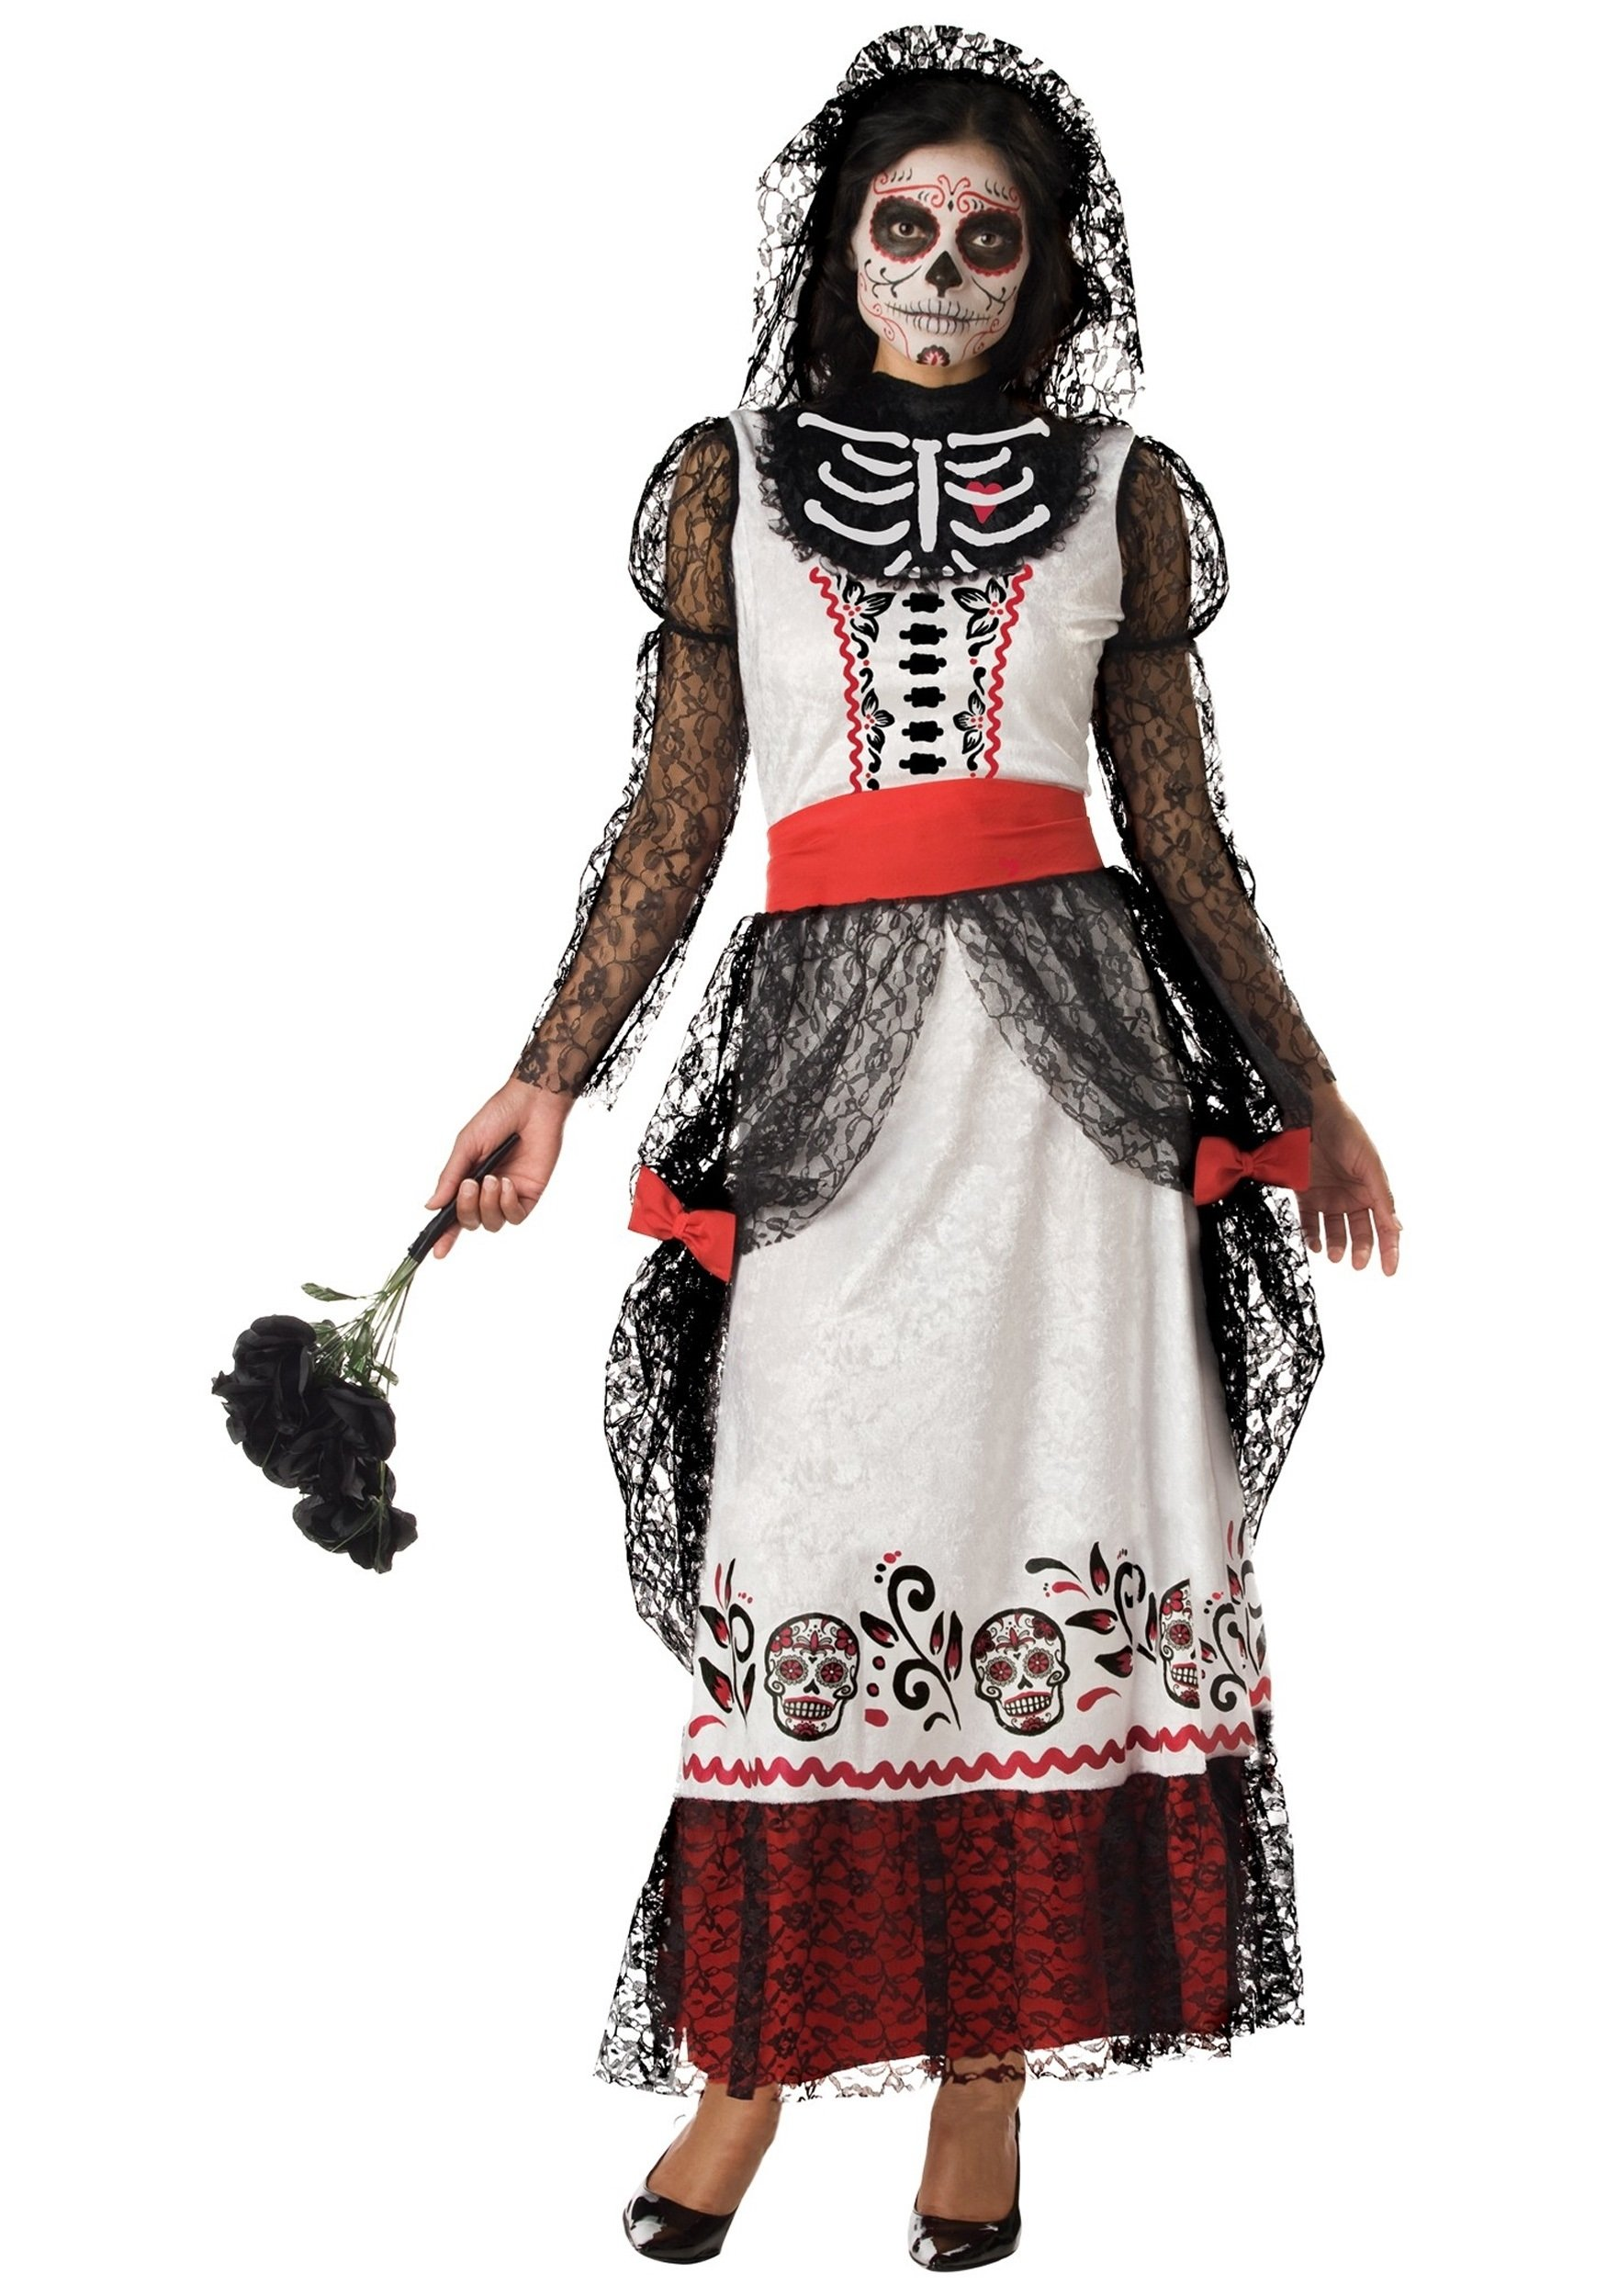 10 spectacular scary halloween costume ideas for women